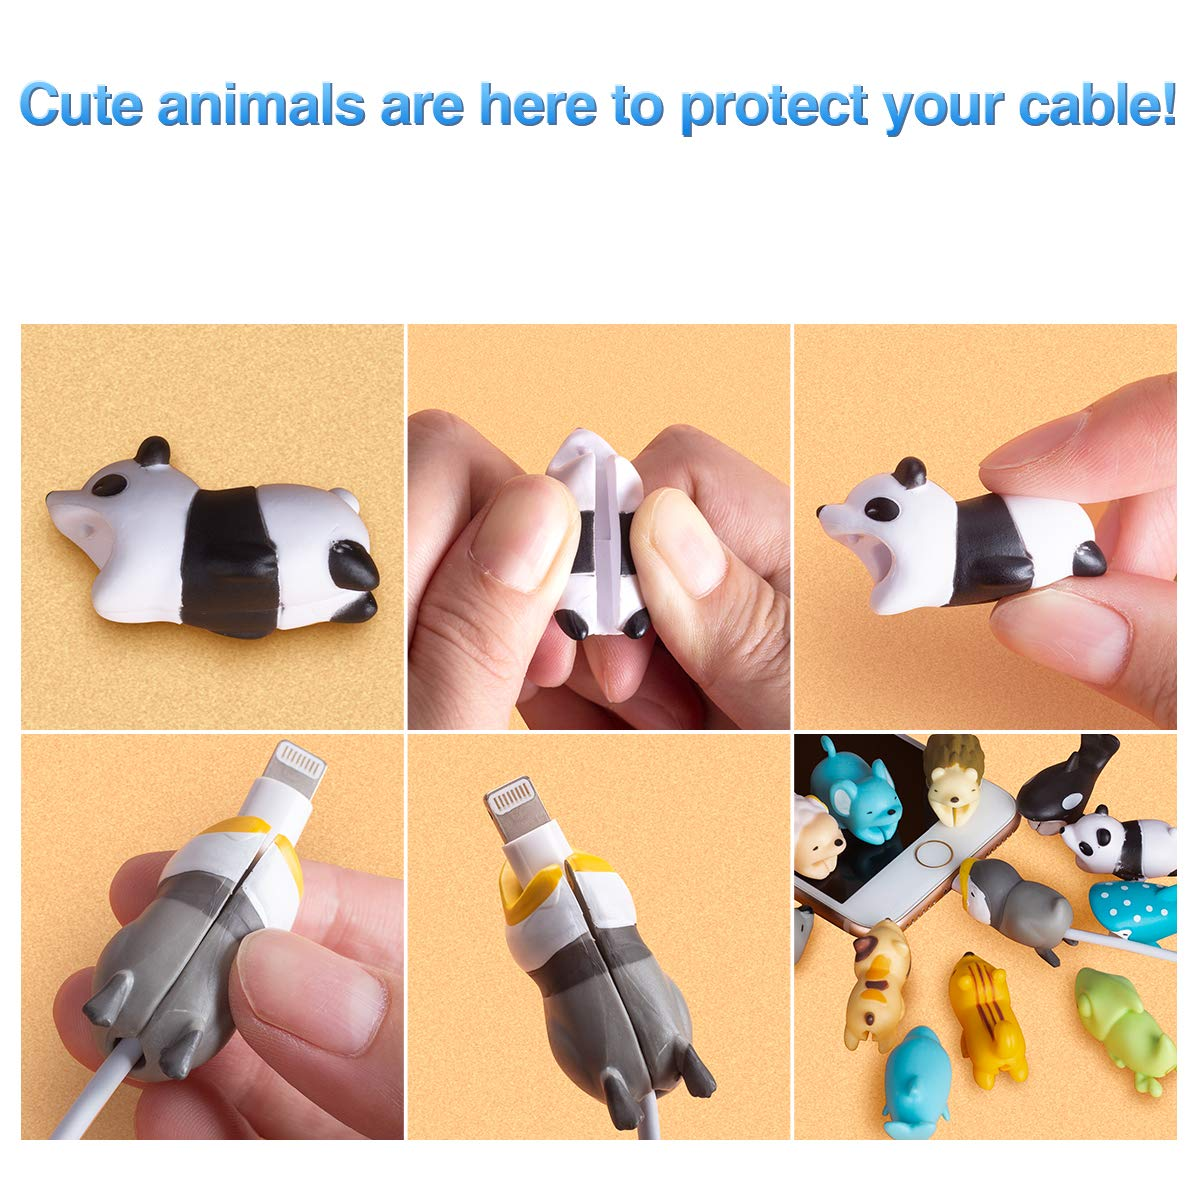 Aitsite 12 Pieces Charger Cable Protector Buddies, Cord Protector Saver with Carry Case and Animals Cable Bites for iPhone and Android Cell Phone Charging Cable by Aitsite (Image #3)